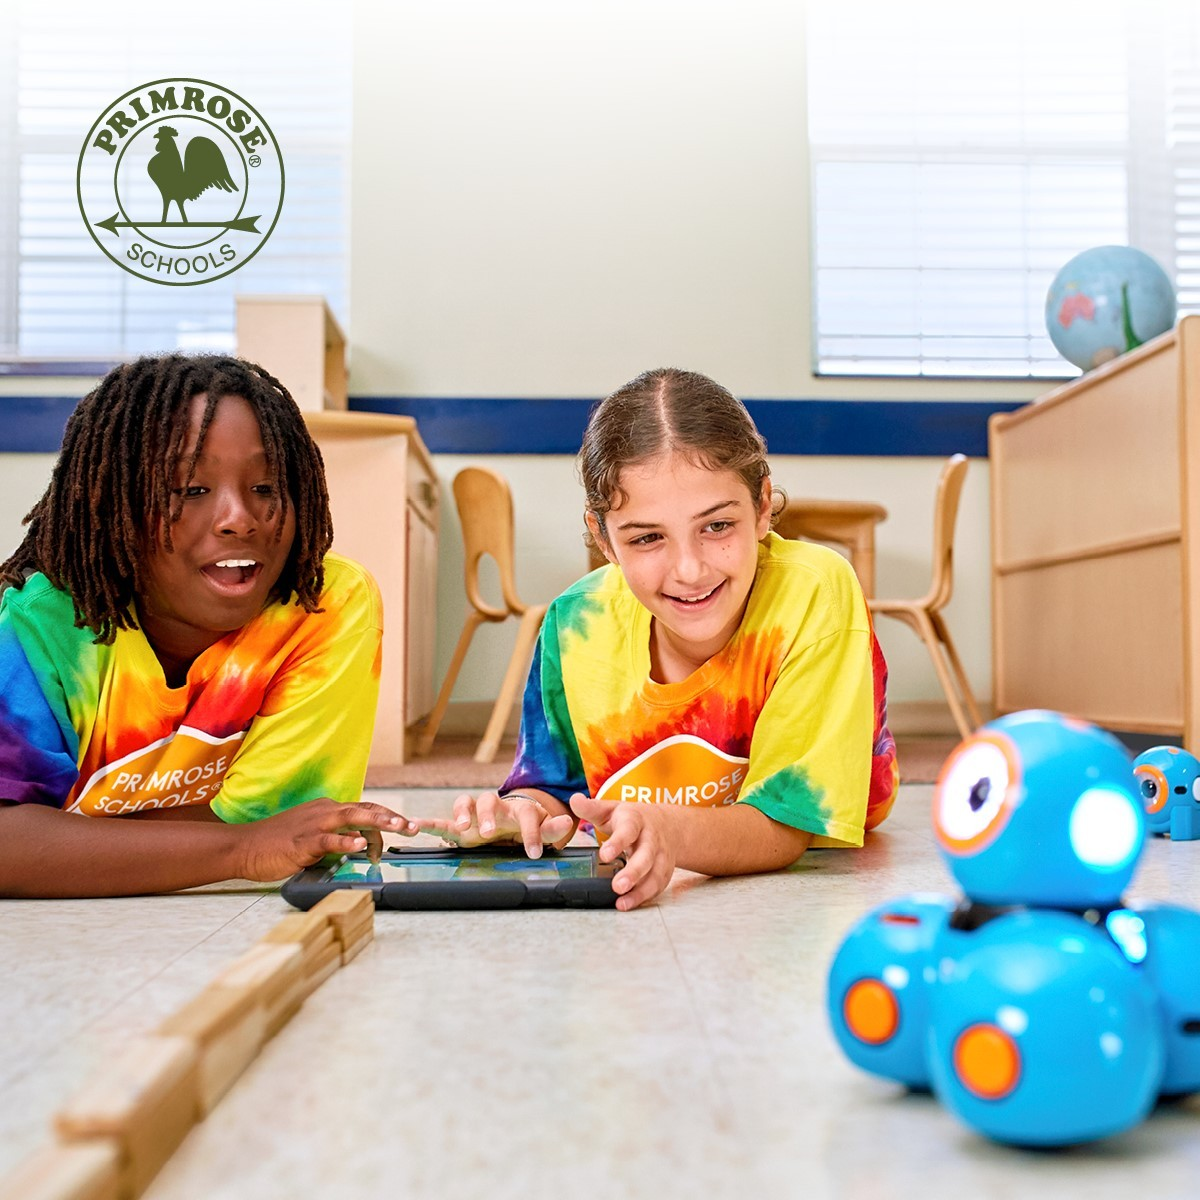 Two chidren playing with ipad and robot